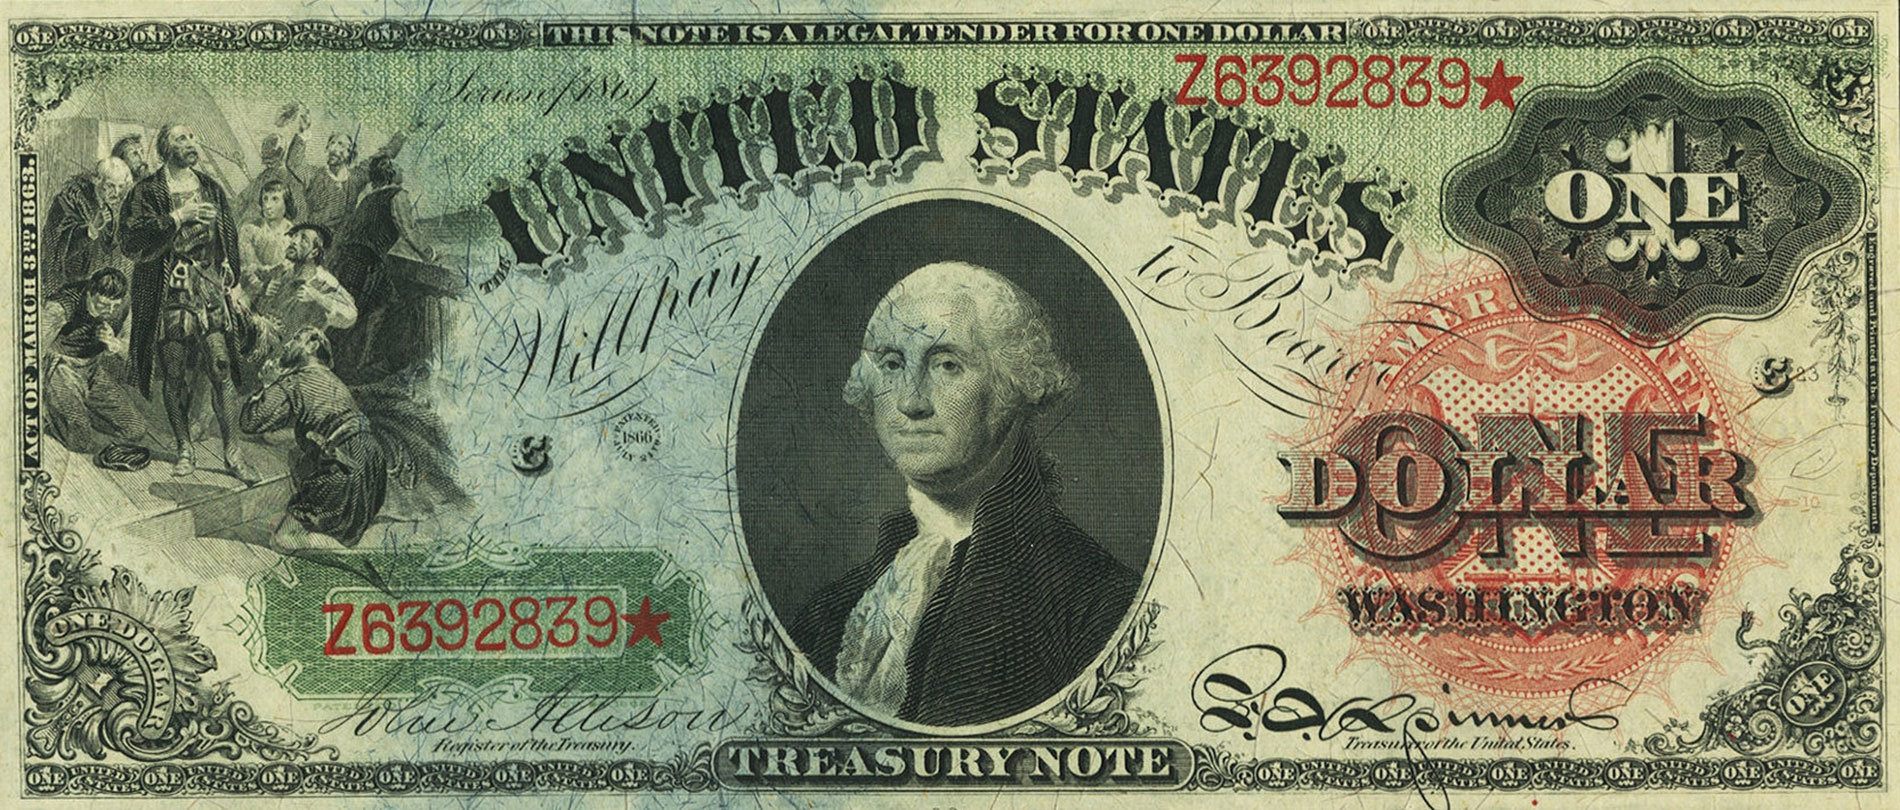 1869 $1 Legal Tender Note (Rainbow Note), courtesy of Heritage Auctions